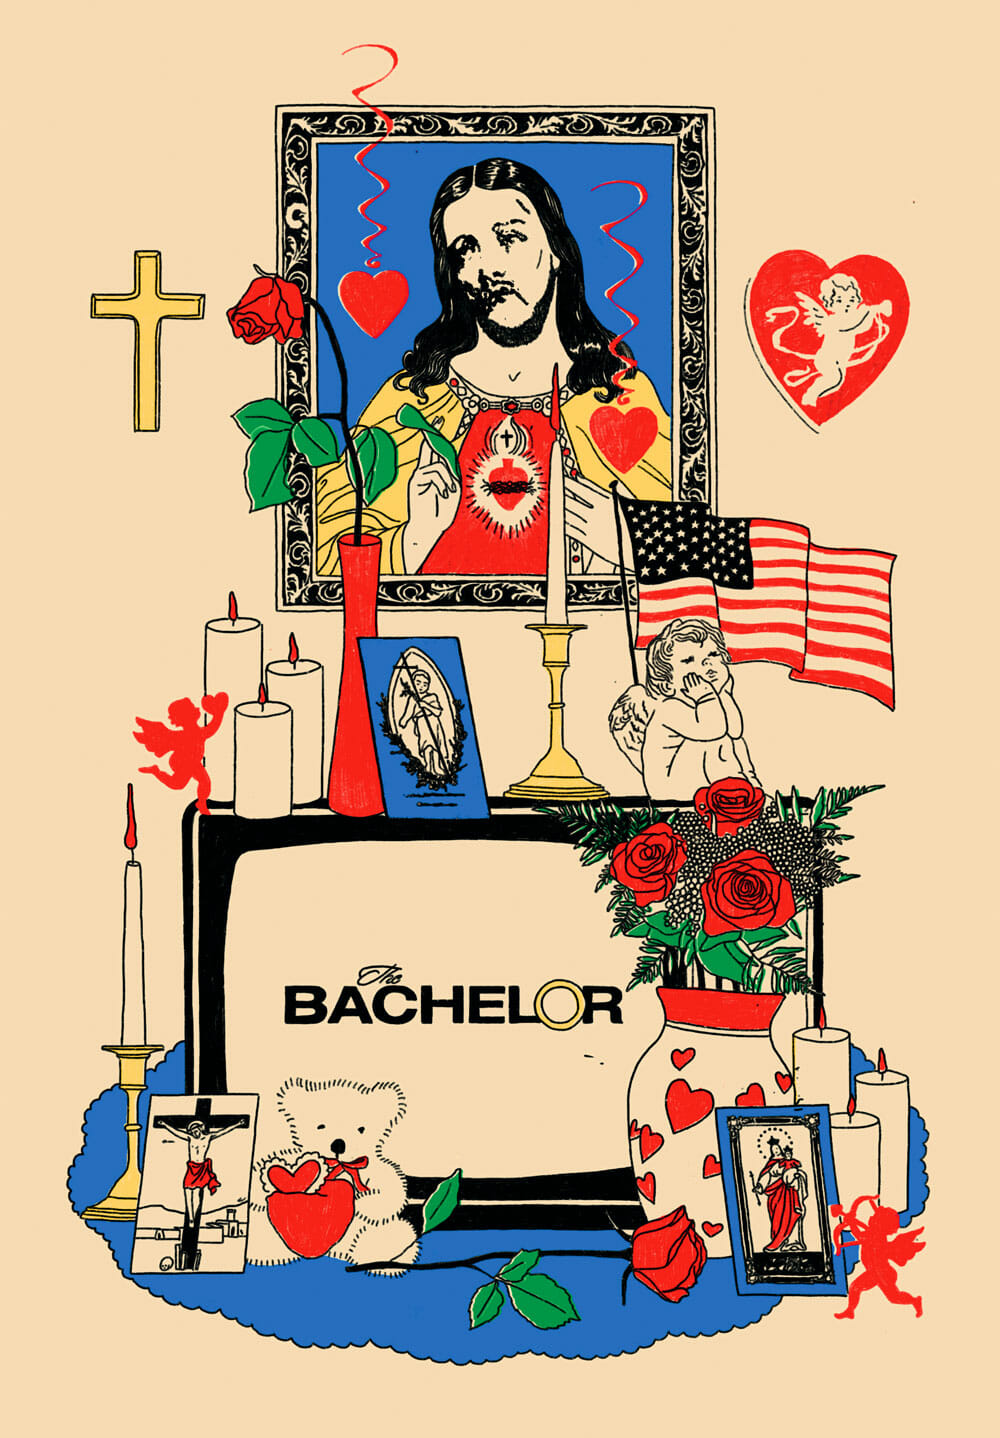 A picture of Jesus Christ hangs above a shrine to The Bachelor, complete with candles, cross, case of roses, and American flag. The Bachelor logo appears on a TV set at the center of the altar.